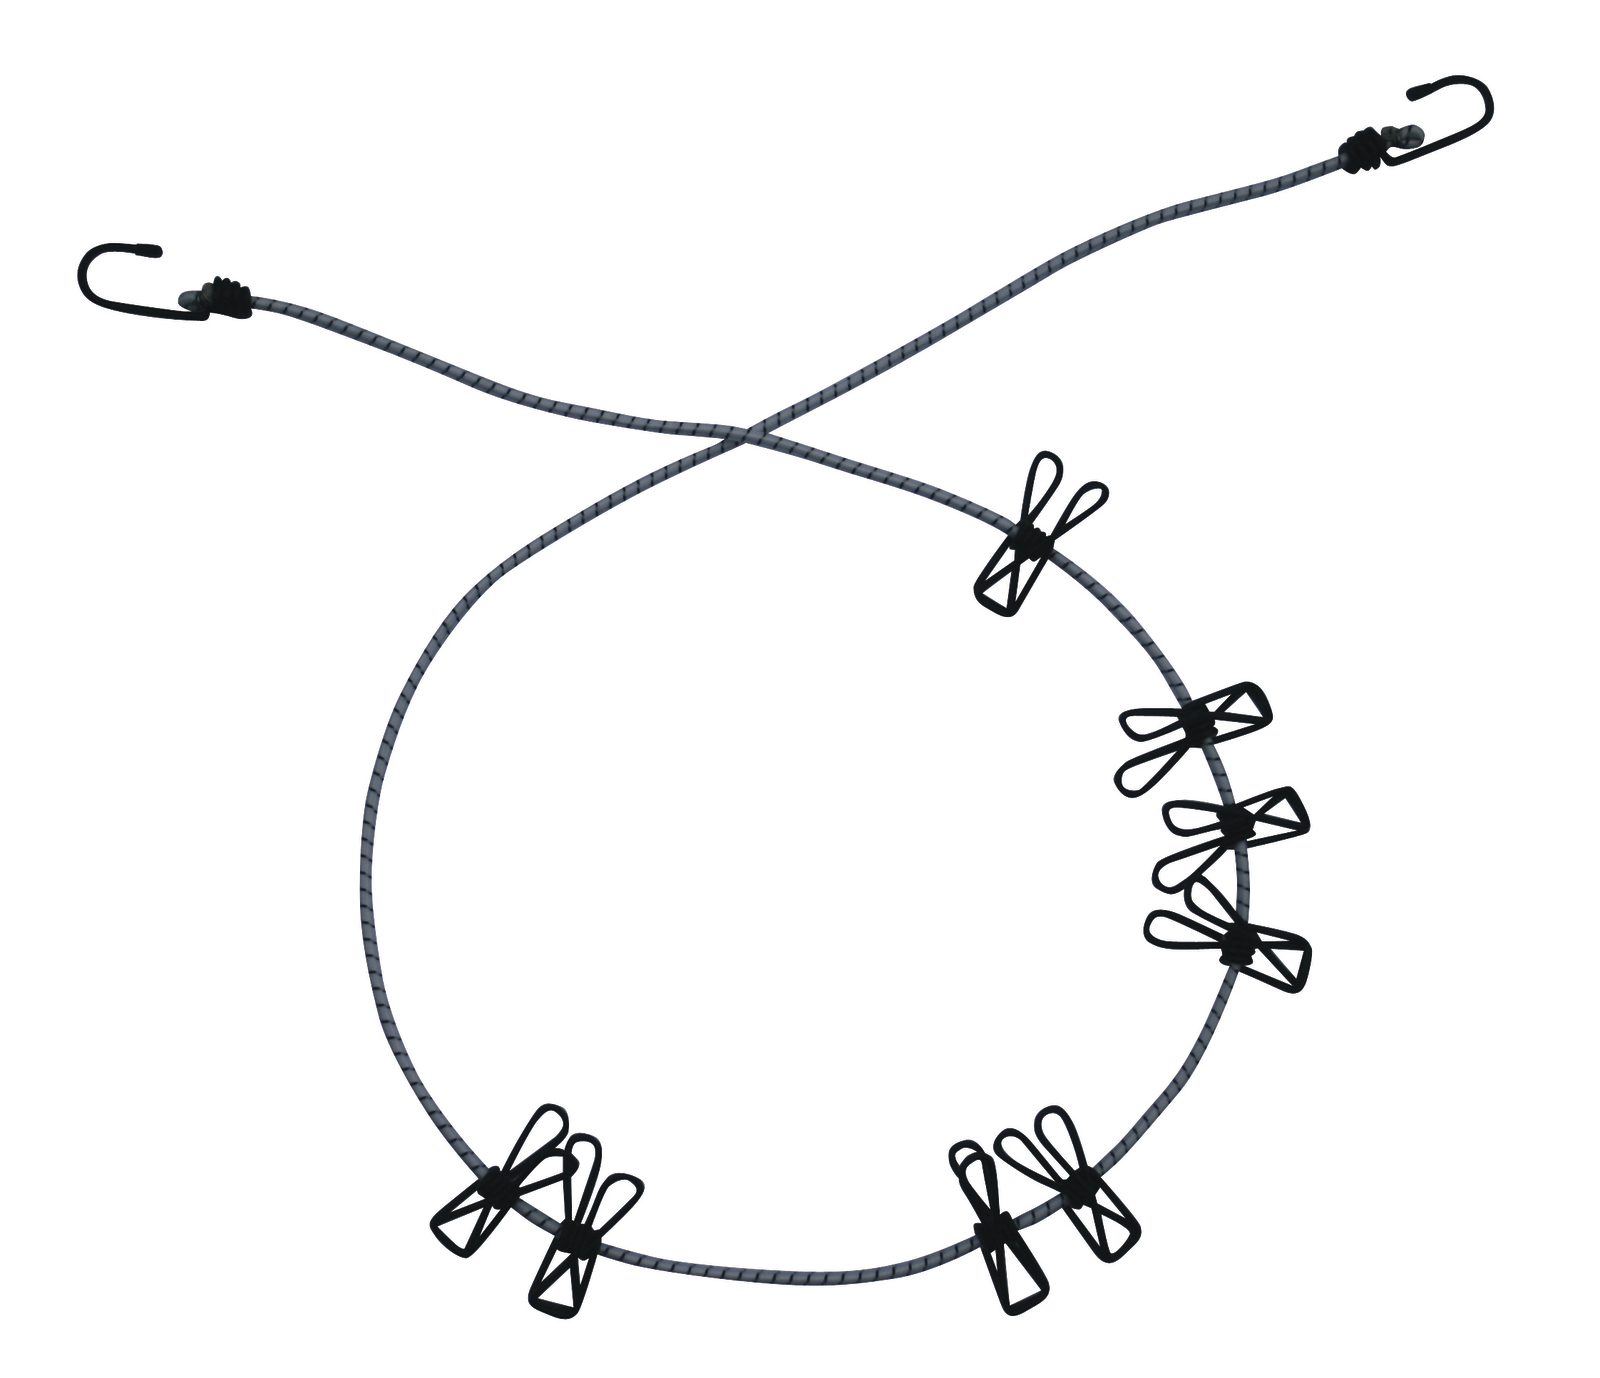 Kiwi 2.5M Expandable Clothes Line With Pegs image